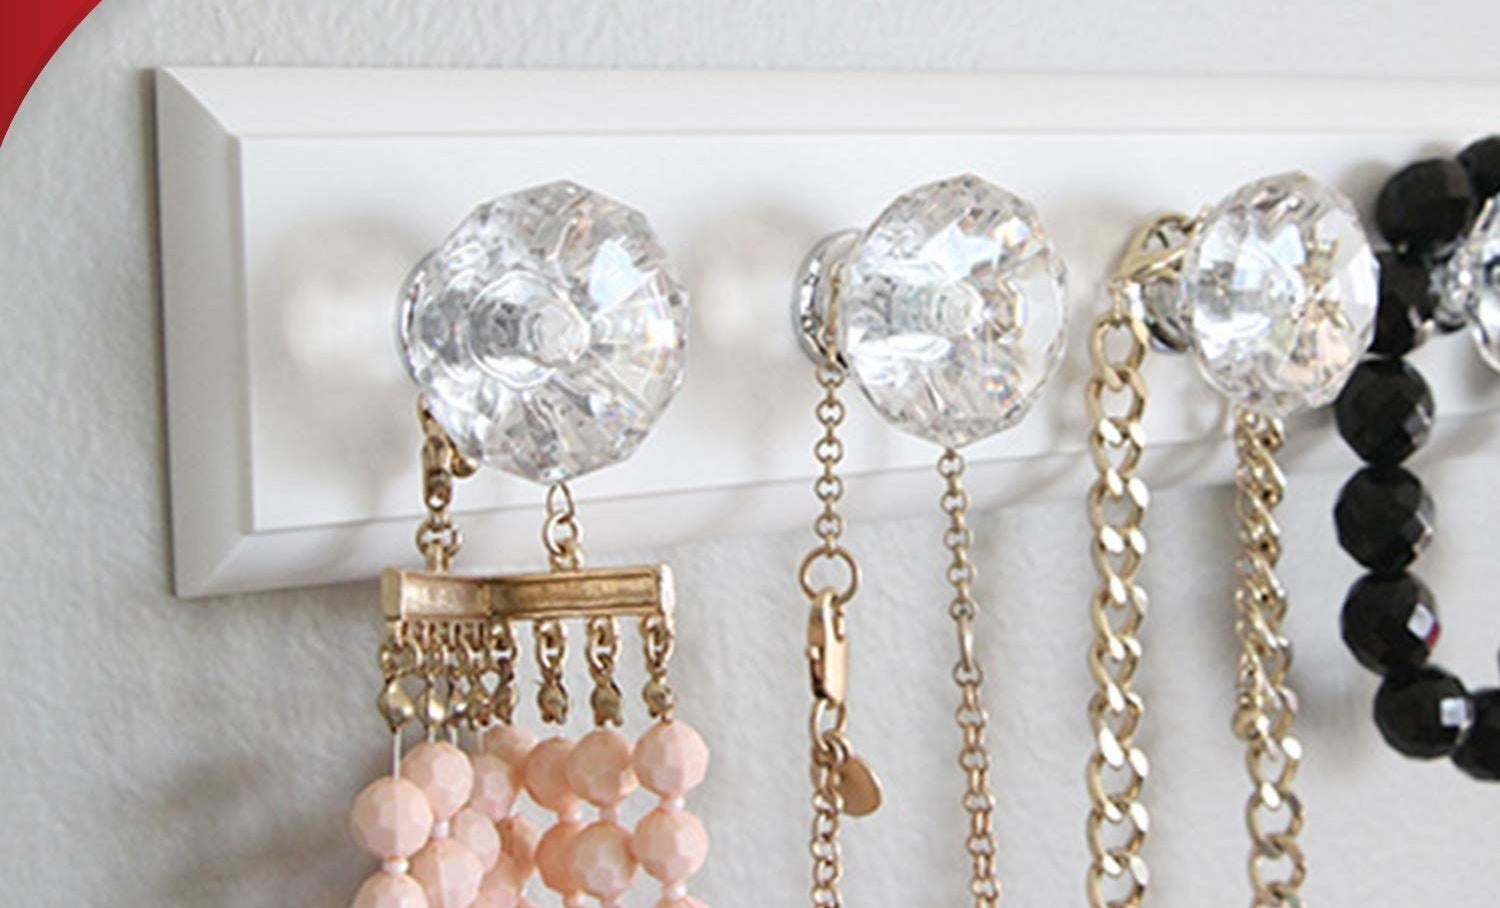 Four necklaces hanging from a rack with four knobs